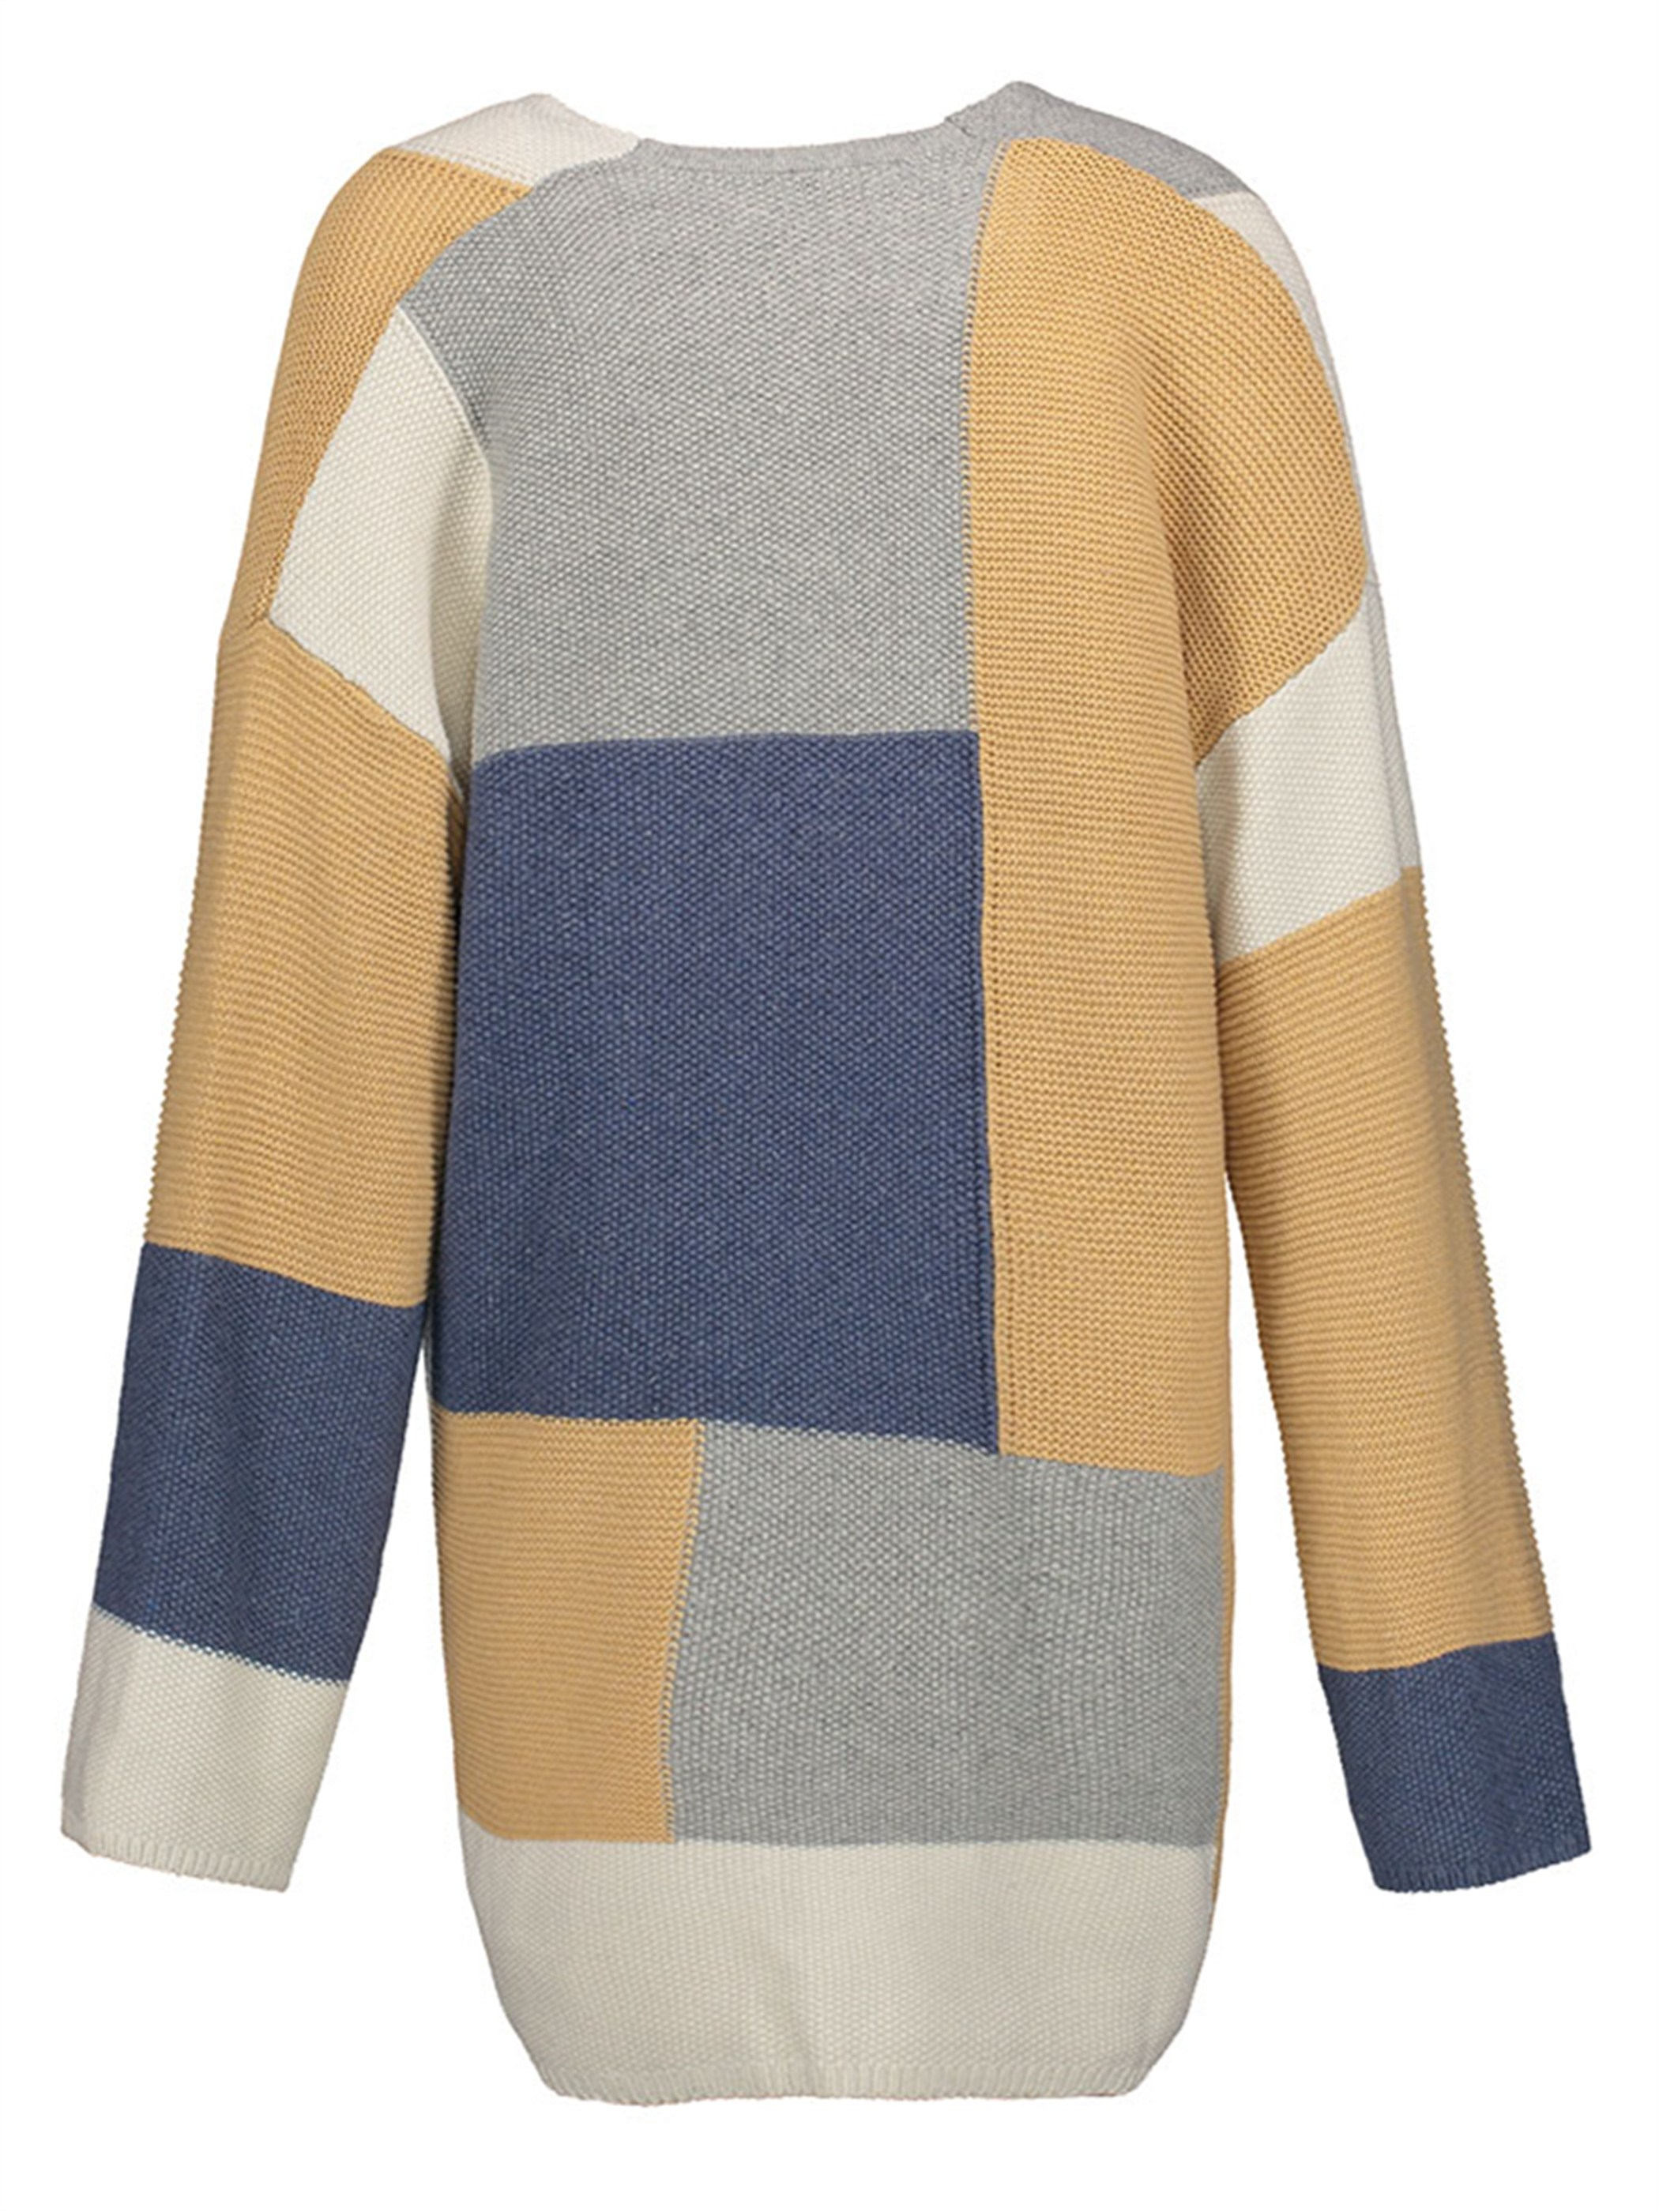 Ericdress Color Block Mid-Length Cardigan Knitwear